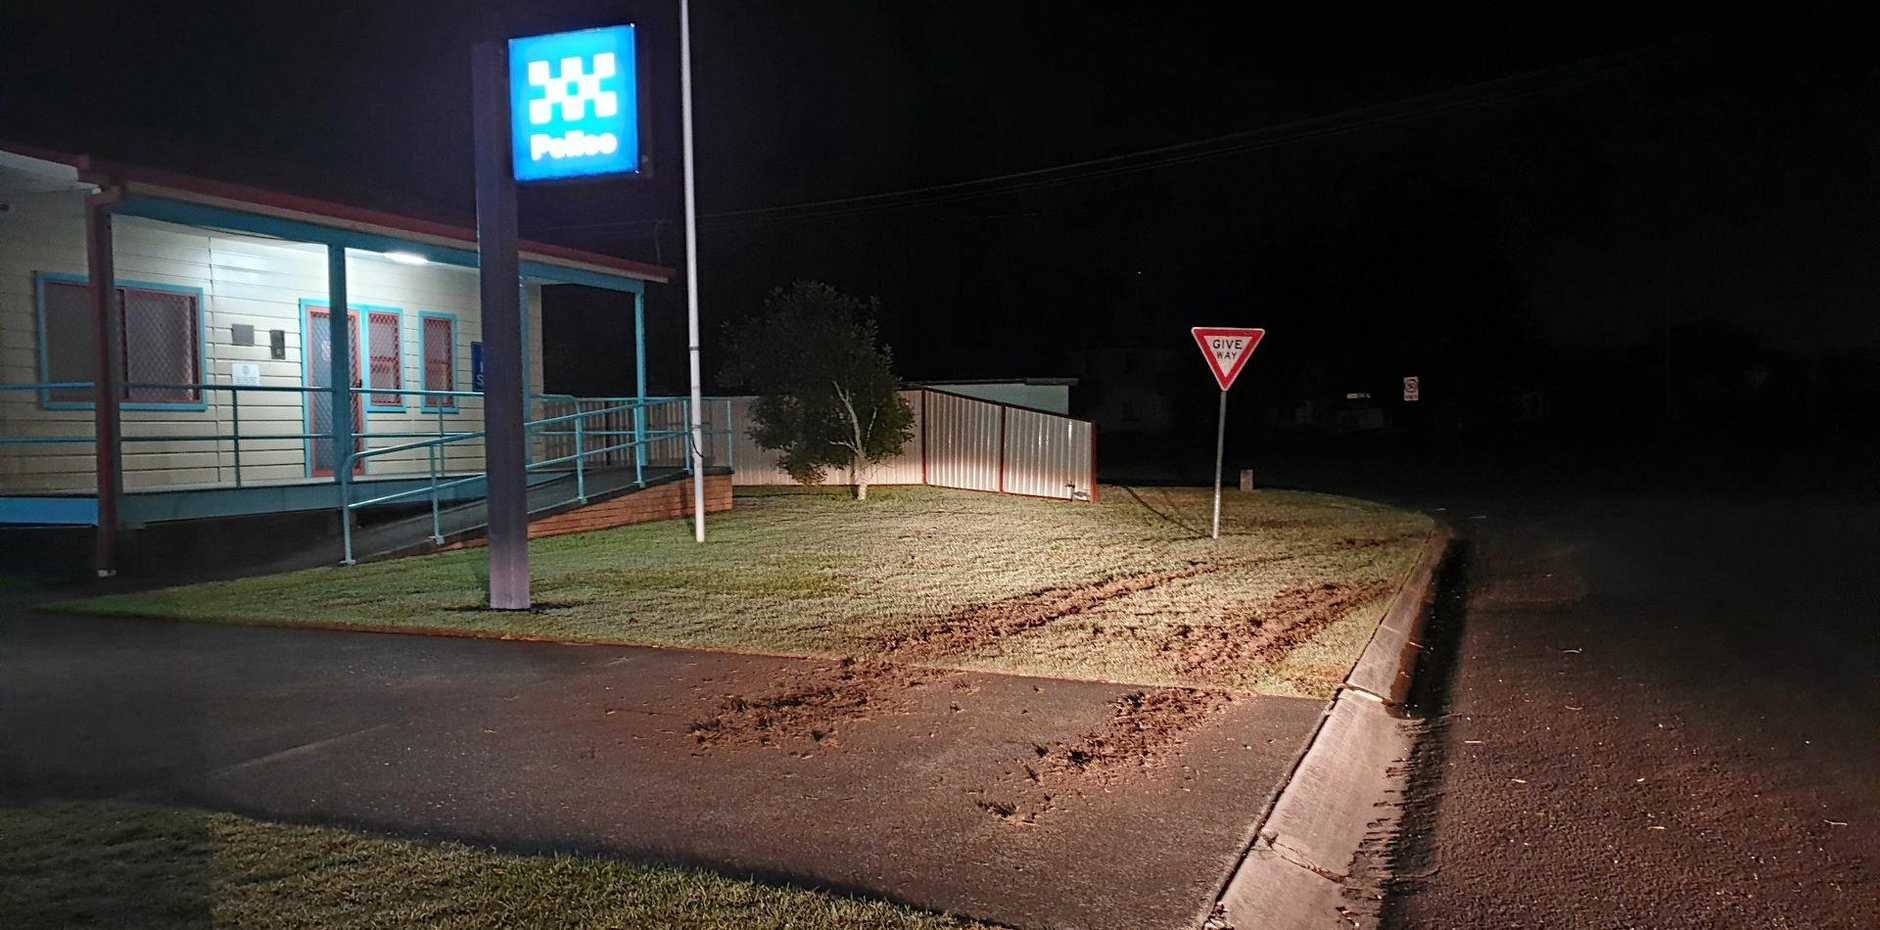 Skidmarks damaging several properties in Wooli including the police station